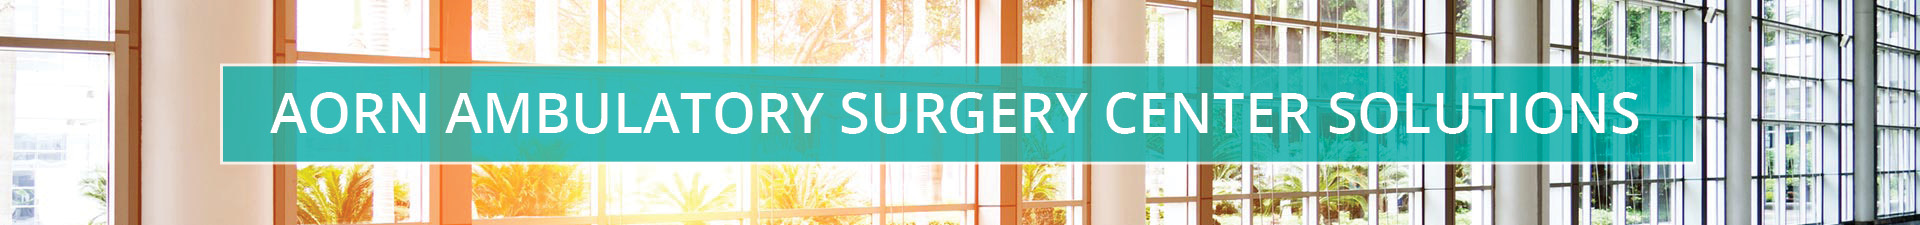 AORN Ambulatory Surgery Center Solutions